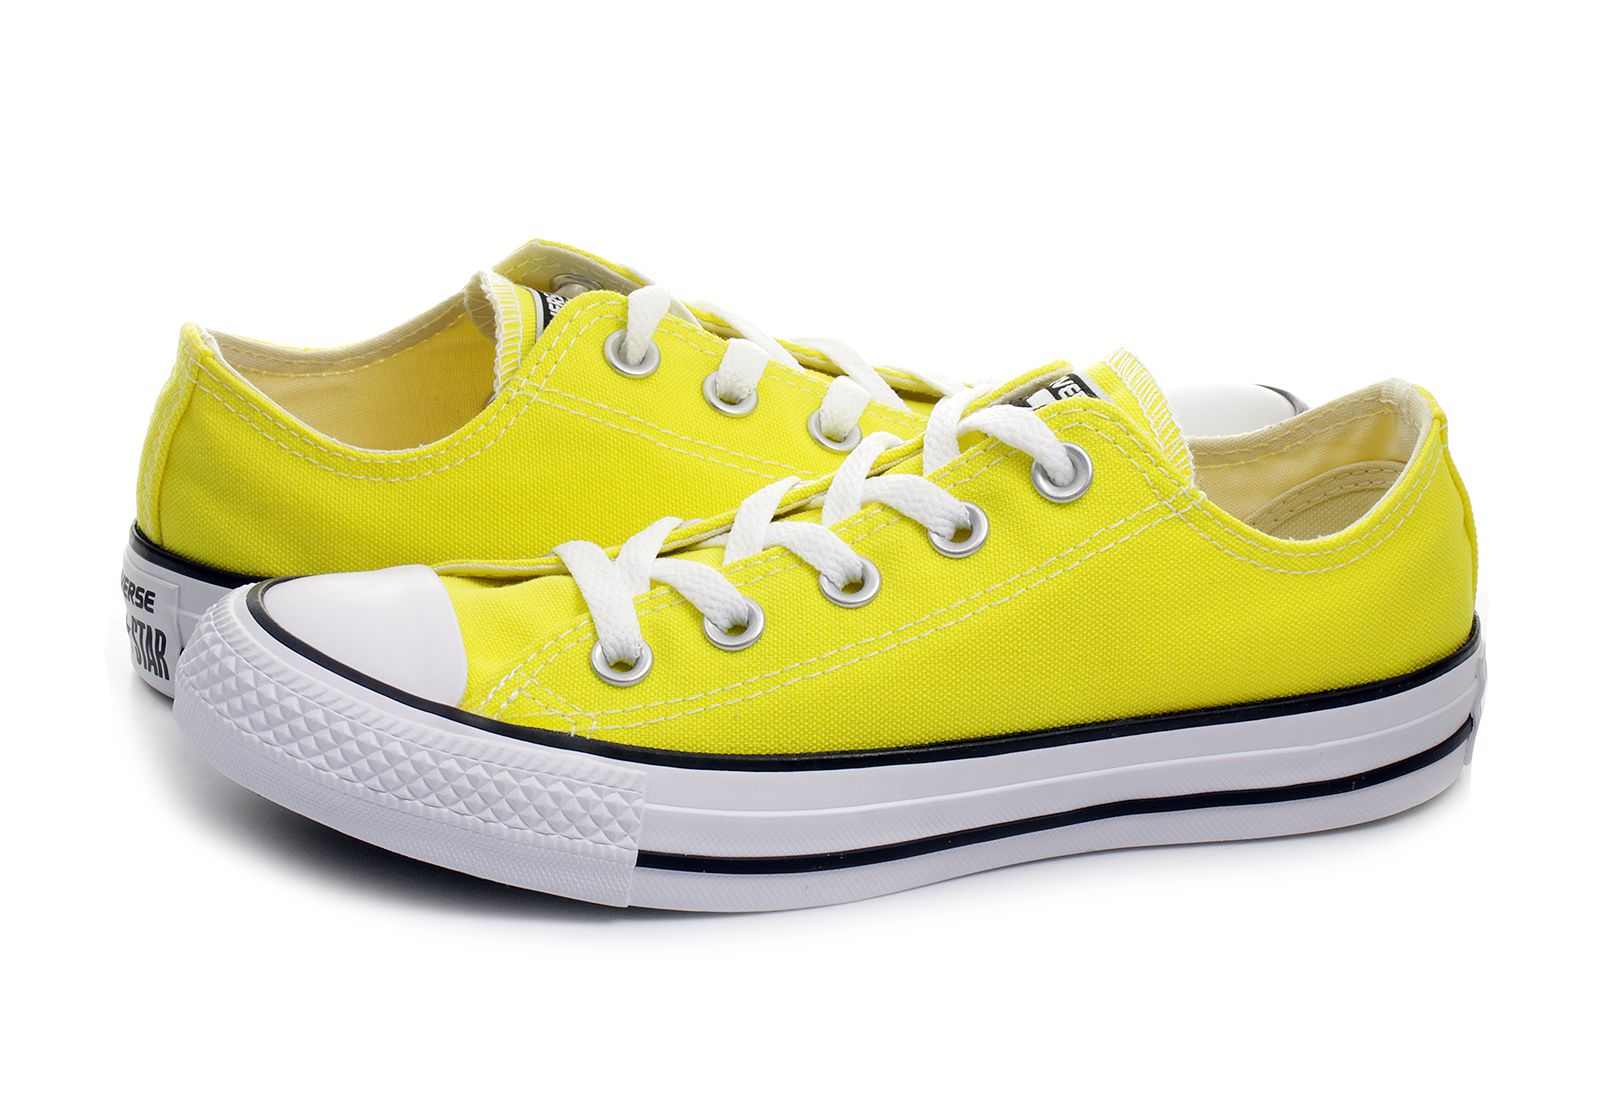 Converse Sneakers - Chuck Taylor All Star Seasonal Ox - 155735C ... b798ee2169